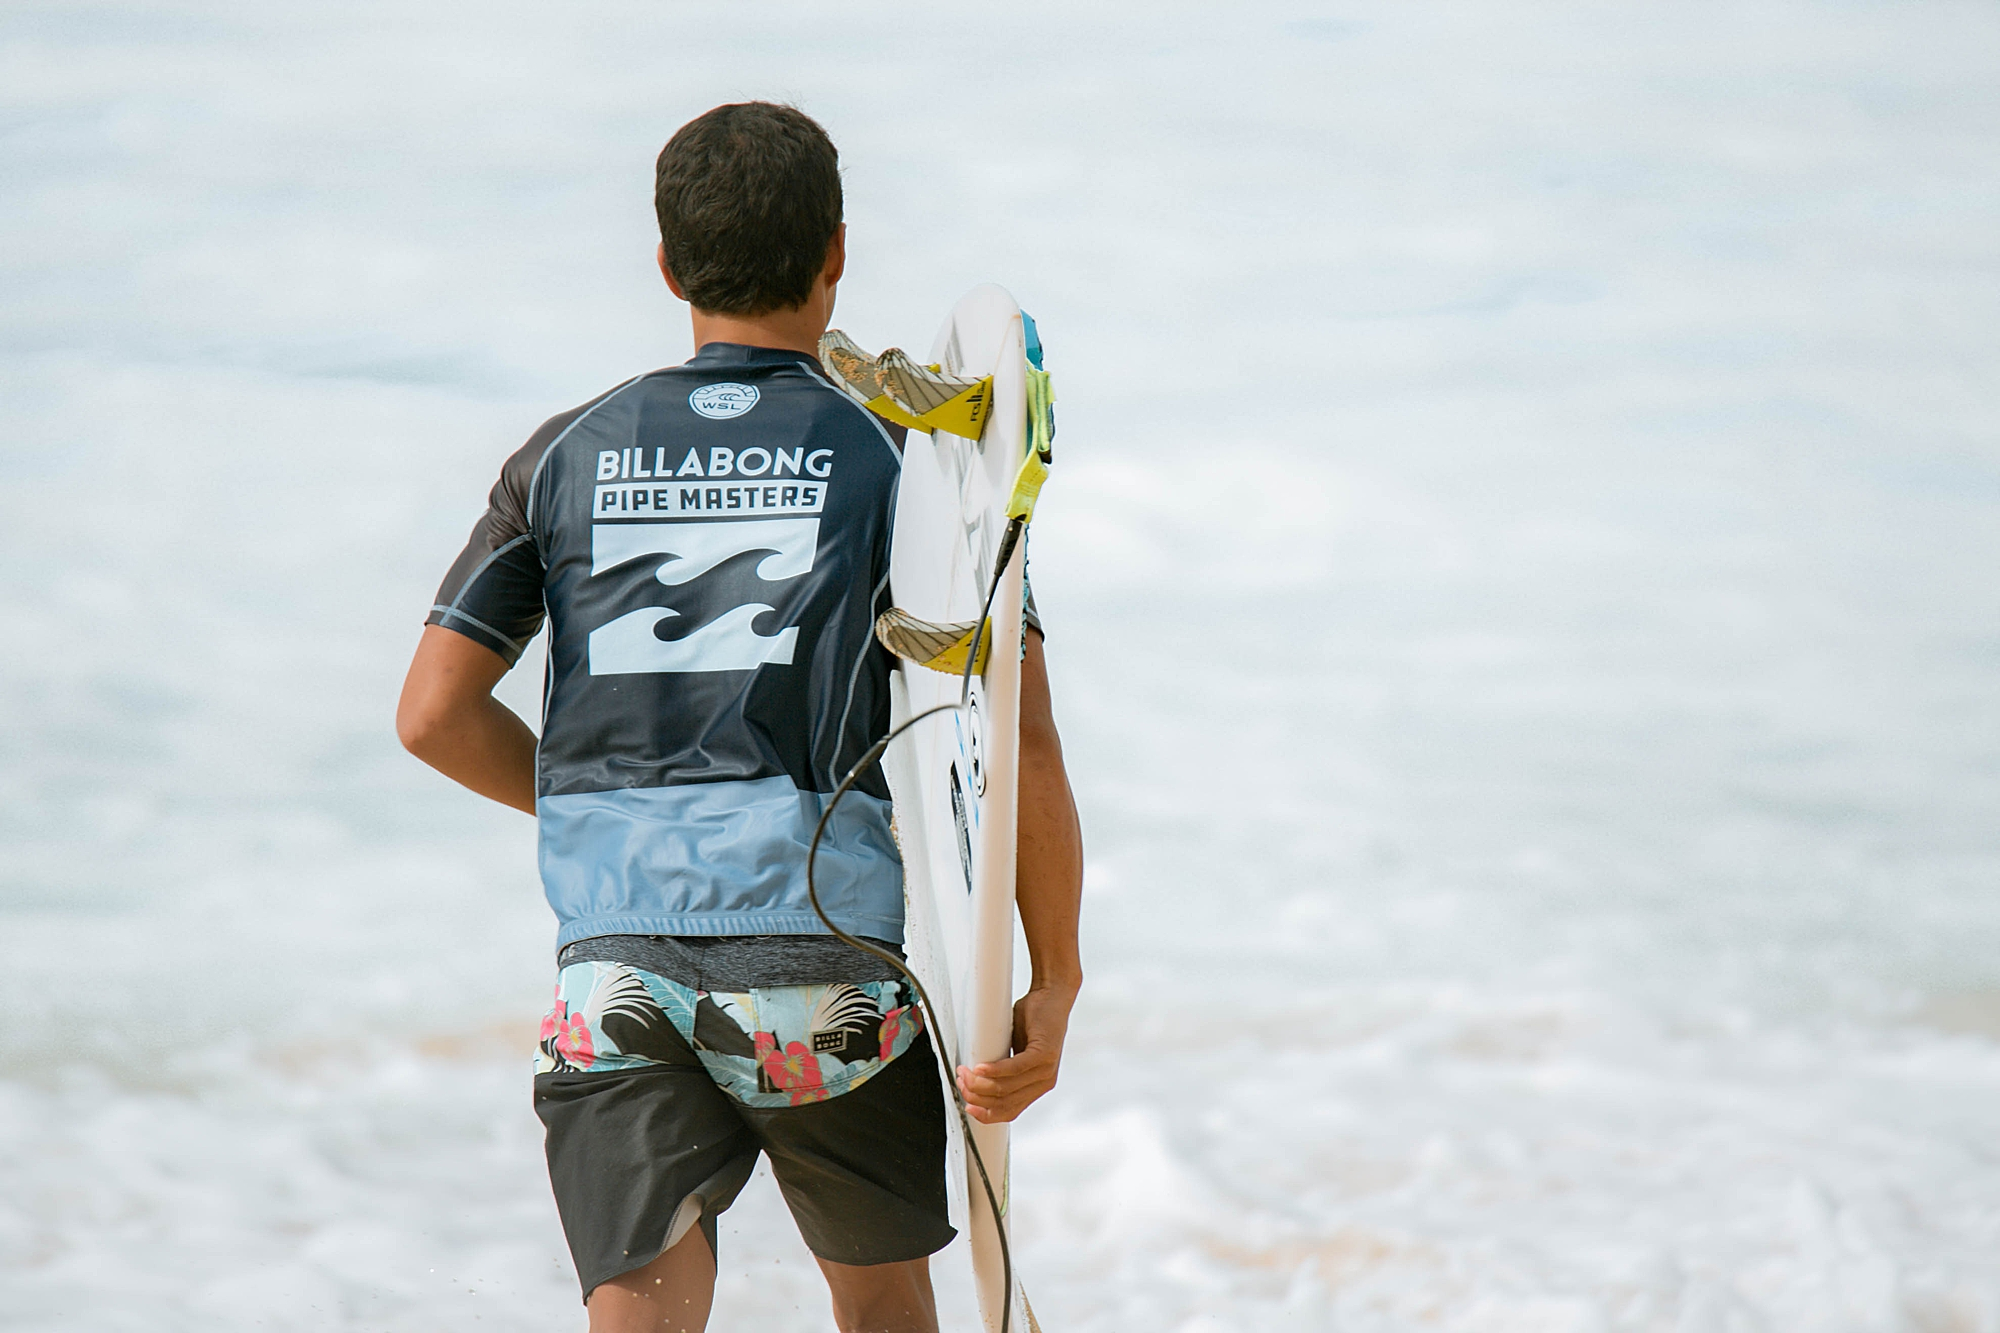 Travel Surf and Travel Lifestyle Photographer Kelee Bovelle @keleeb - Billabong Pipe Masters 2018 North Shore Oahu Hawaii_0012.jpg